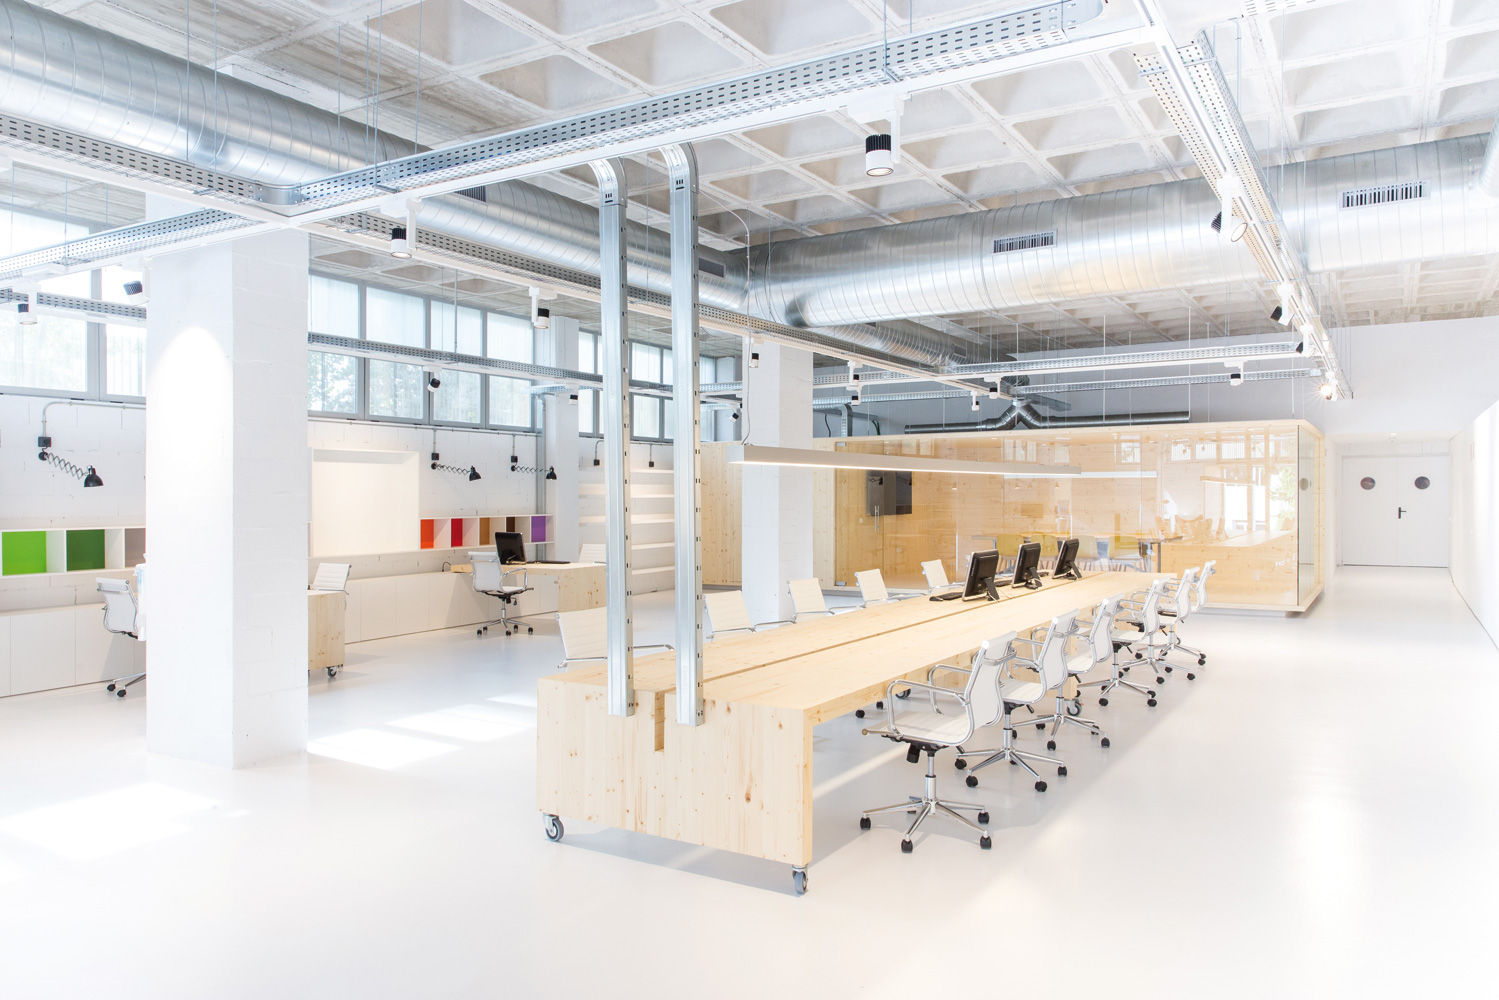 On dise o proyectos oficinas para los laboratorios for Arquitectura low cost